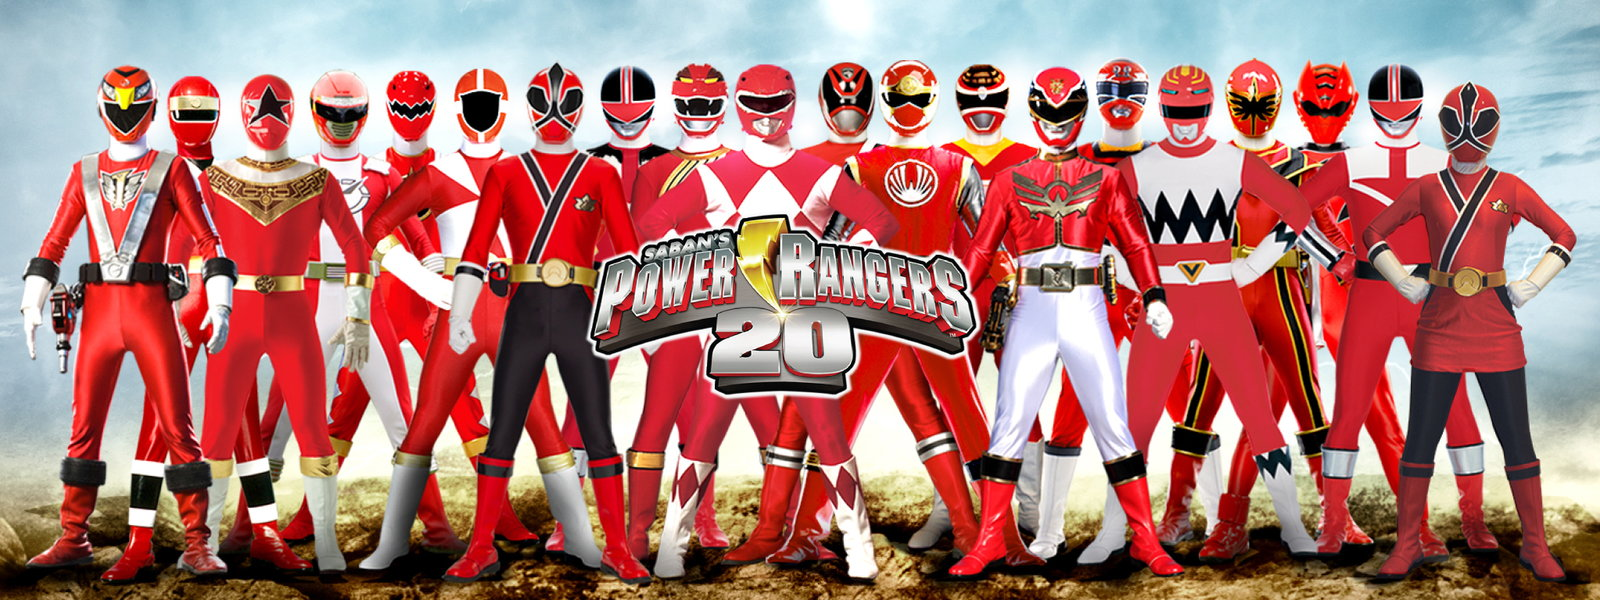 20 anni di Power Rangers – Jungle Fury | Il blog vuoto